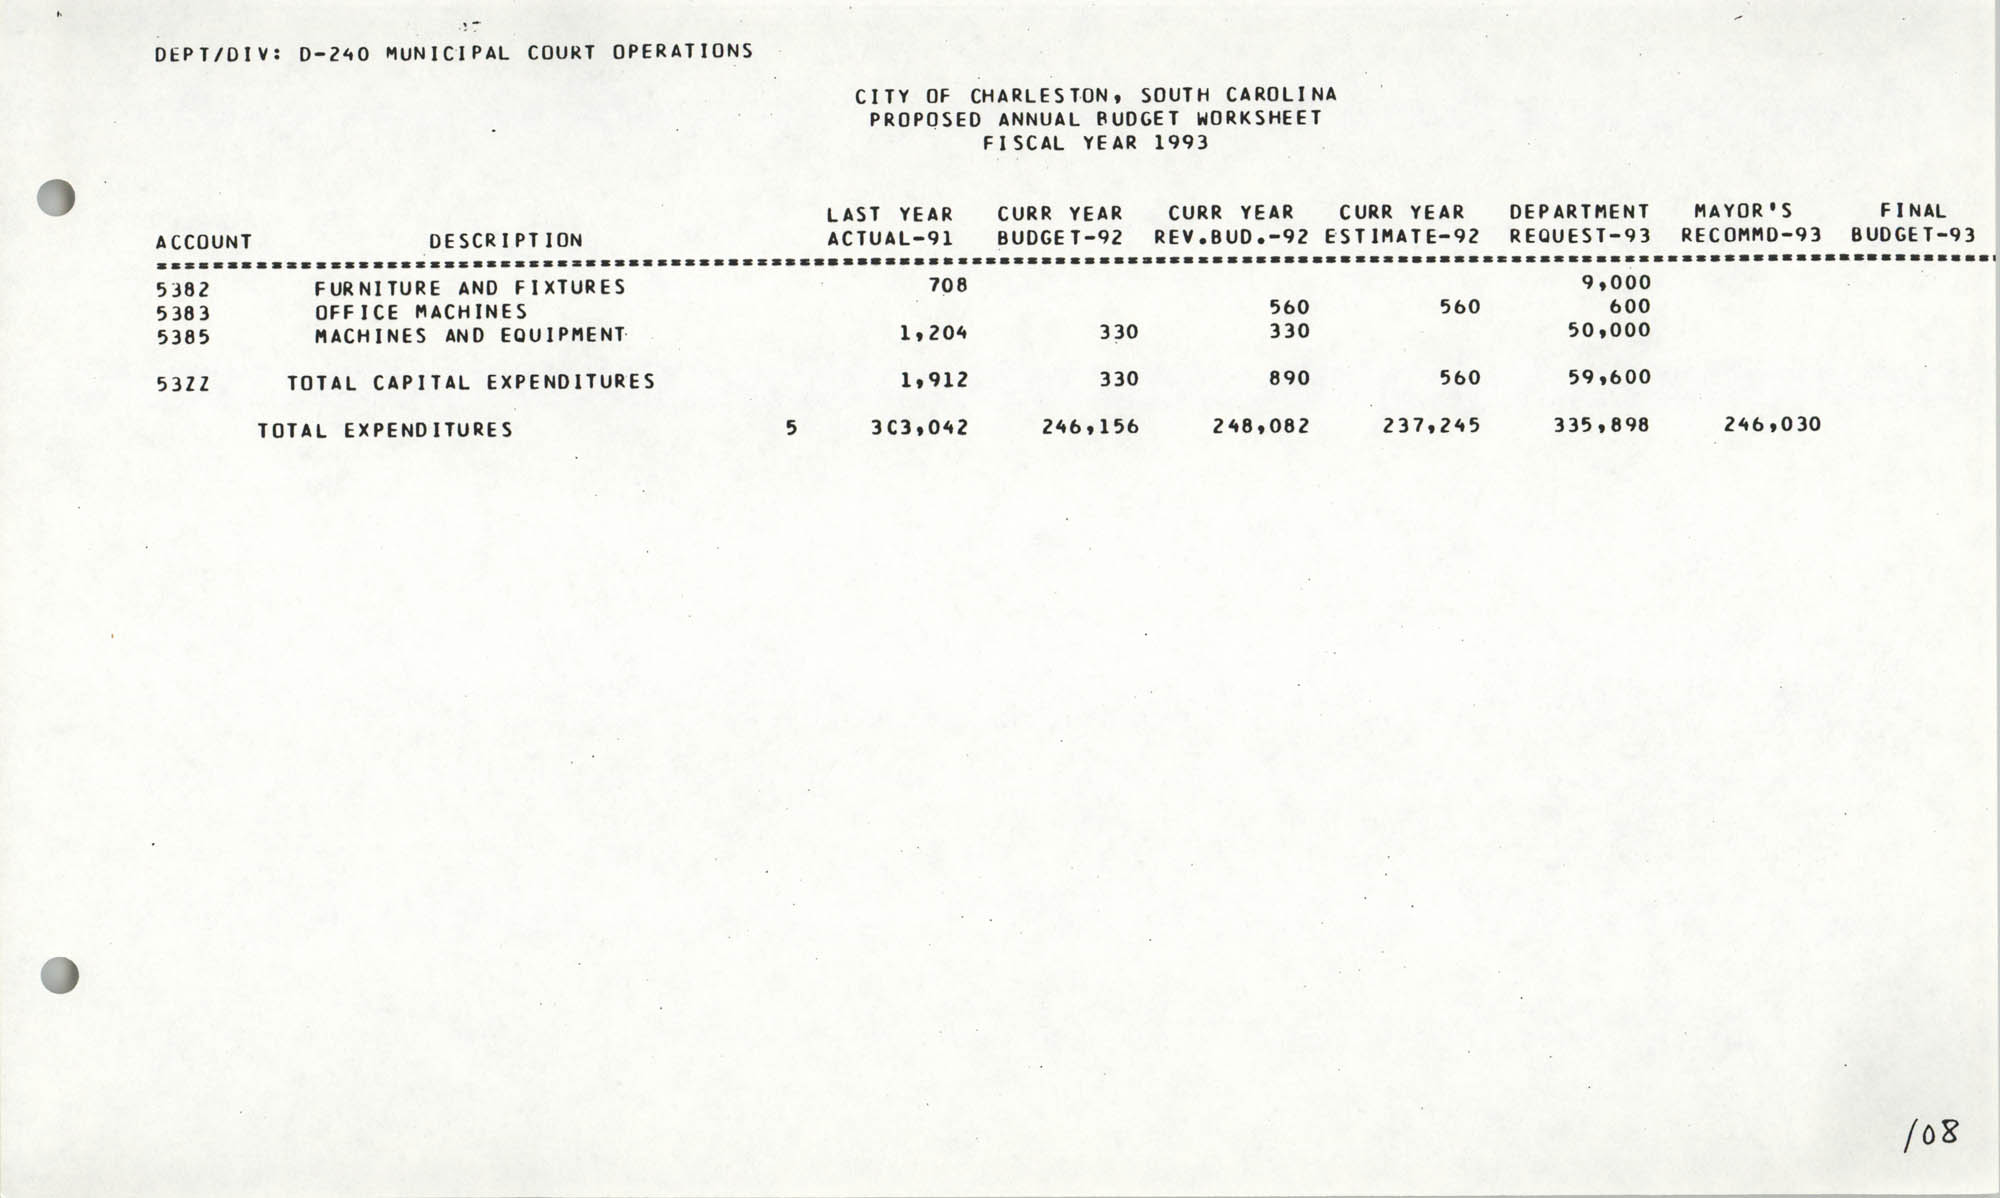 The City Council of Charleston, South Carolina, 1993 Budget, Page 108